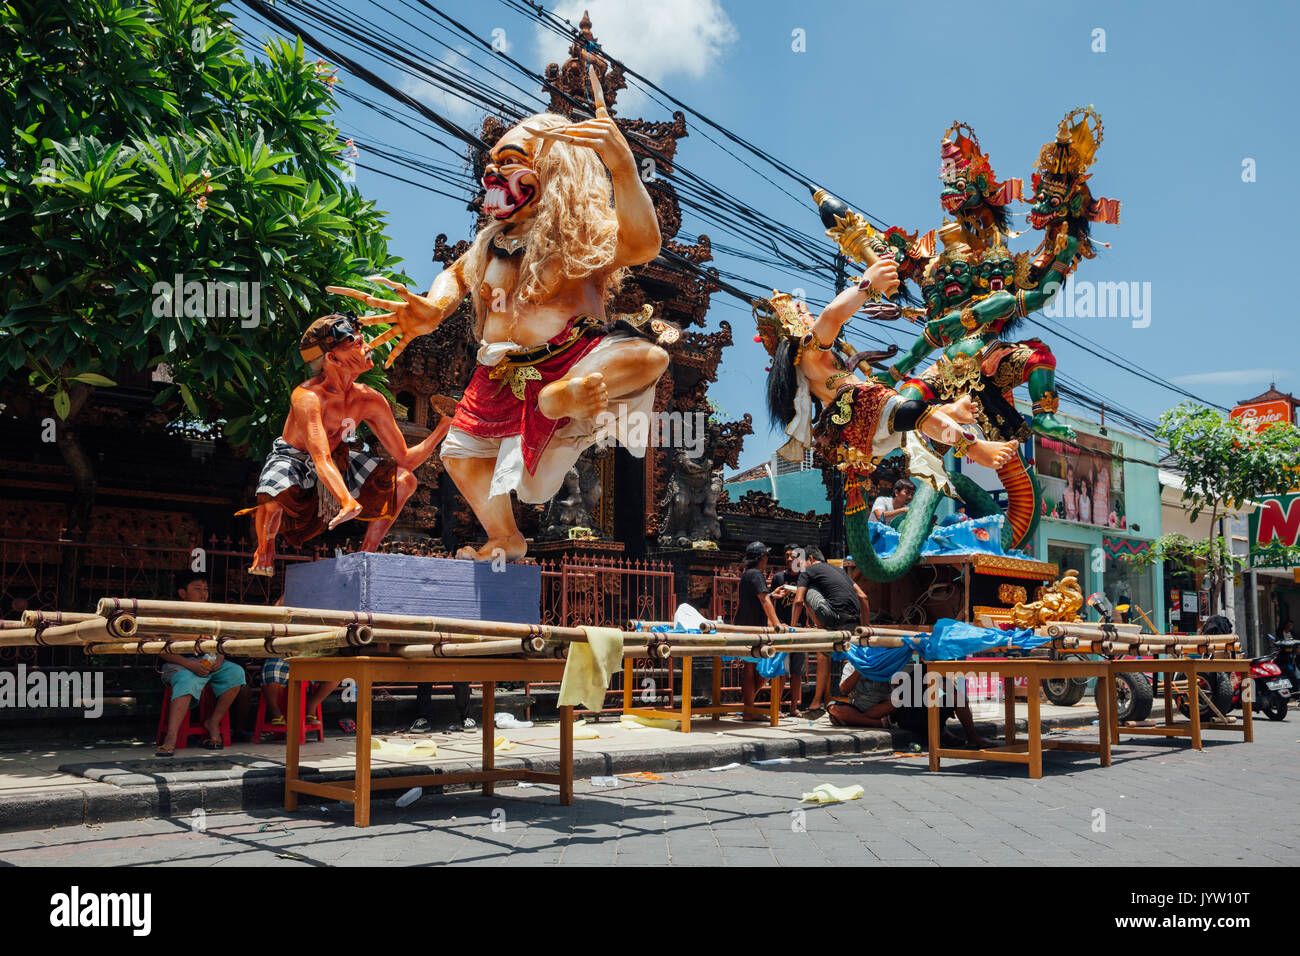 Bali, Indonesia - March 08, 2016:   Ogoh-Ogoh statues being prepared for the parade during Balinese New Year celebrations Stock Photo